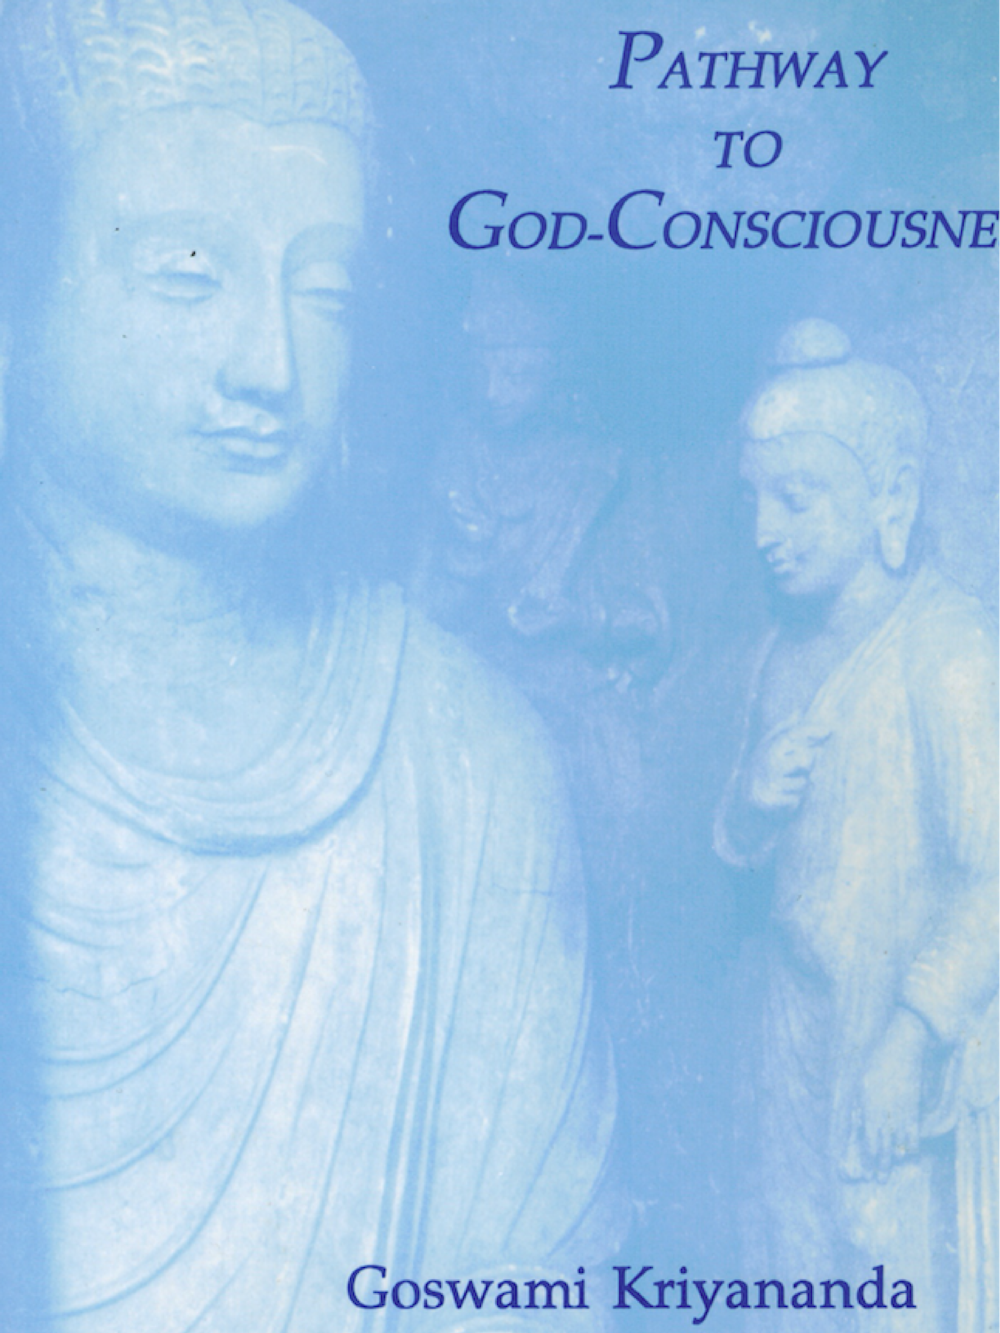 Pathway to God-Consciousness - $14.95